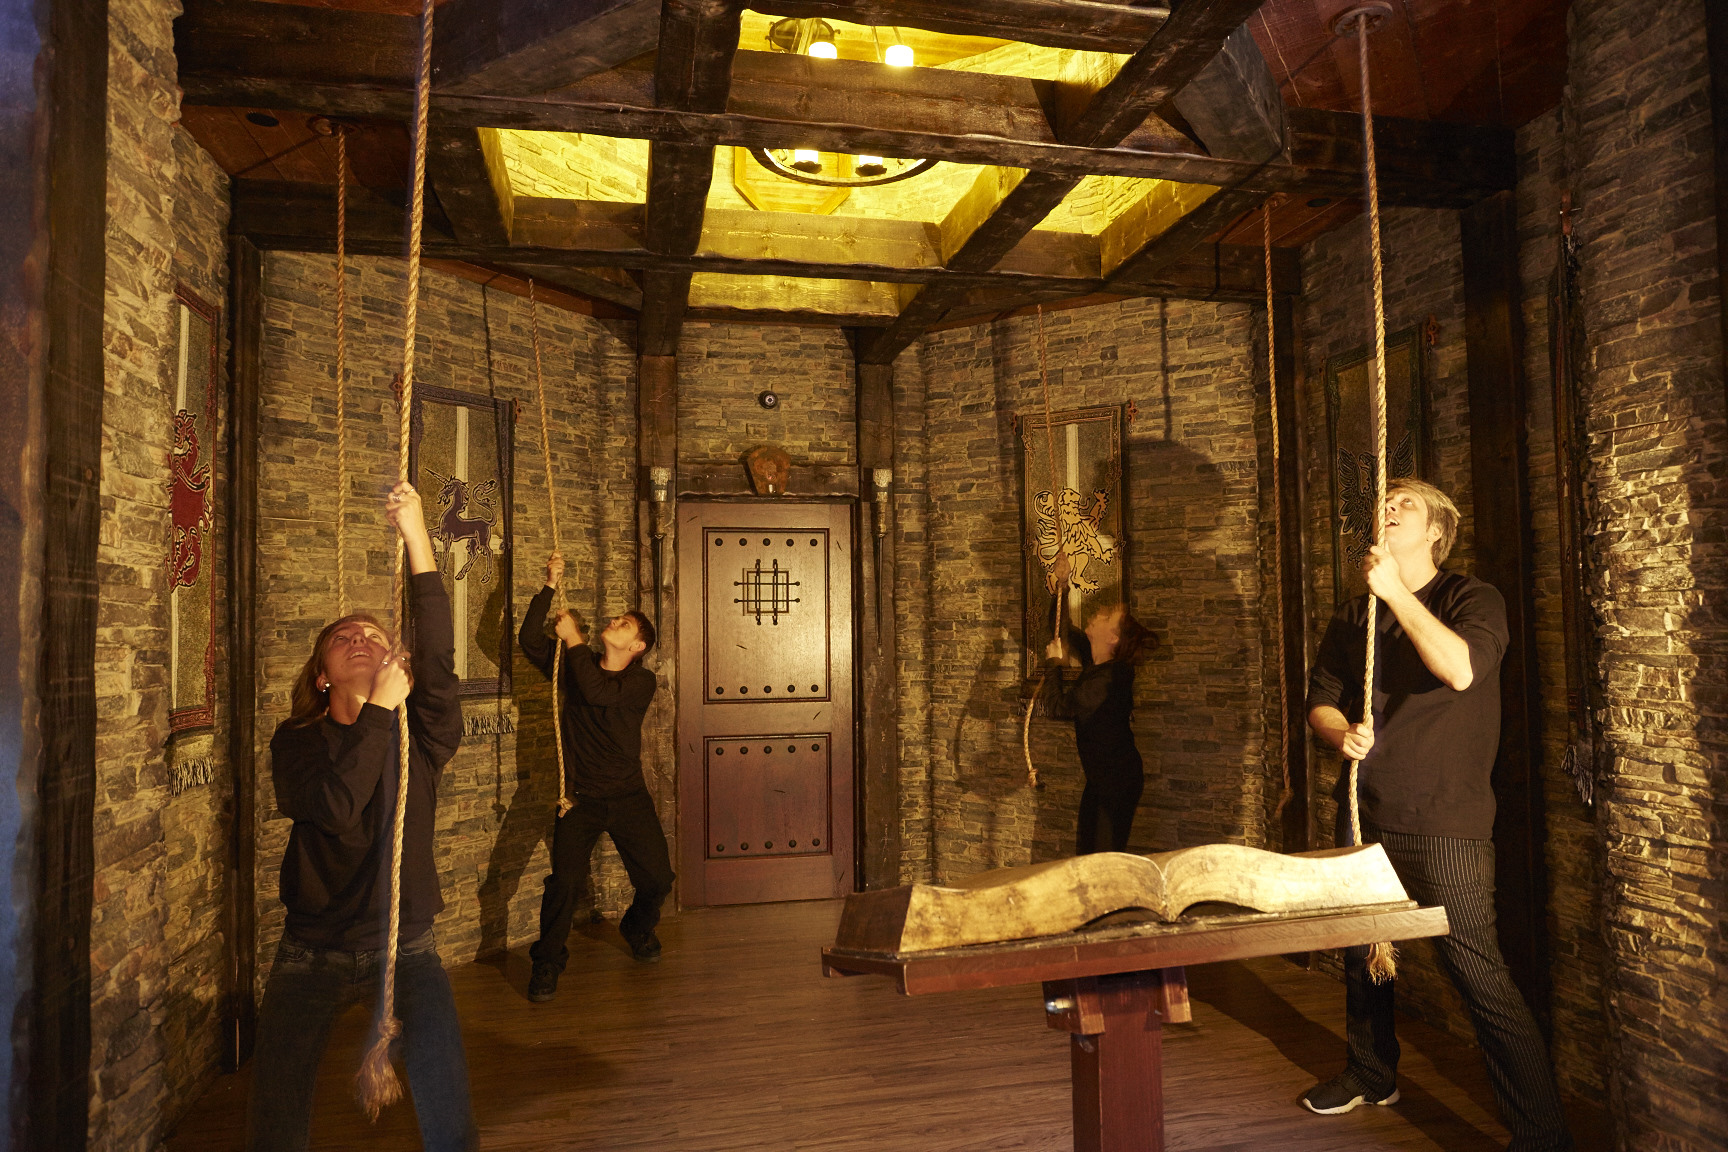 Players work to solve a puzzle in Drago's Castle. (Contributed photo)